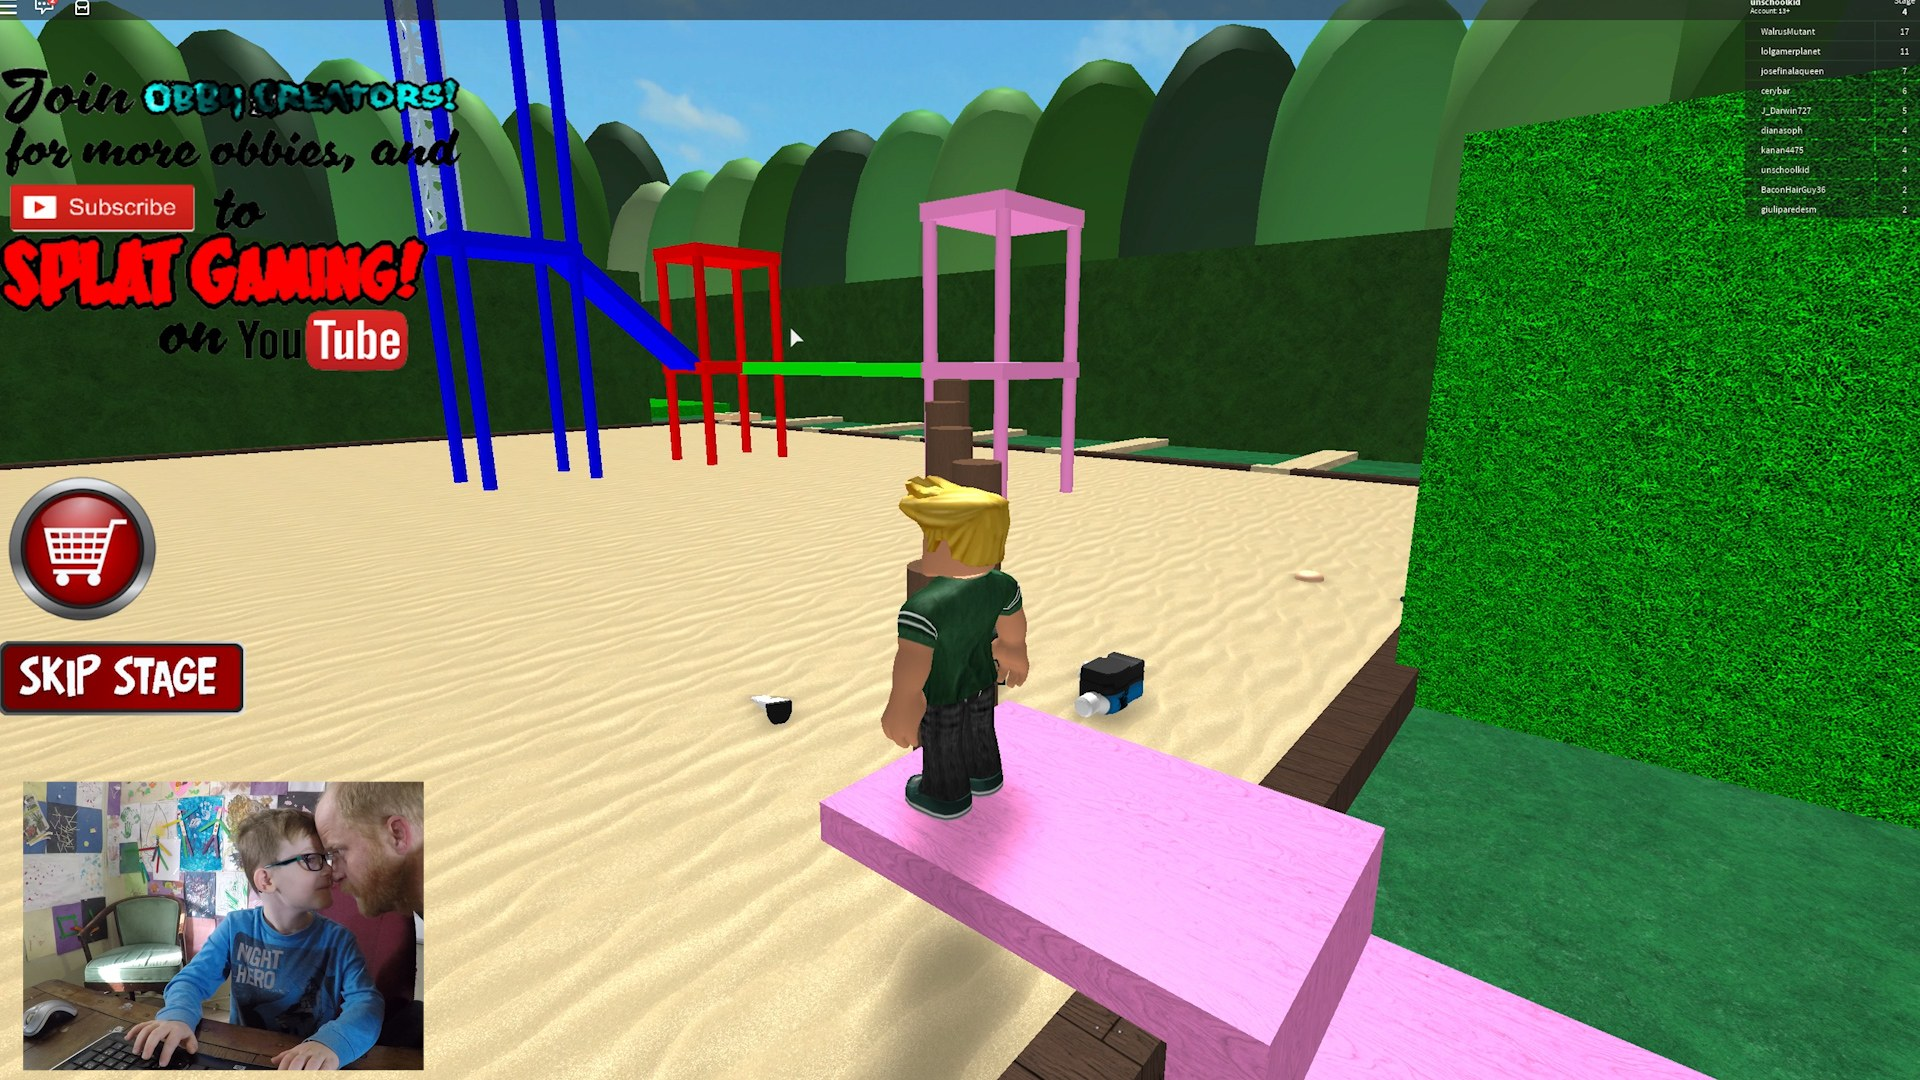 gaming roblox for unschool